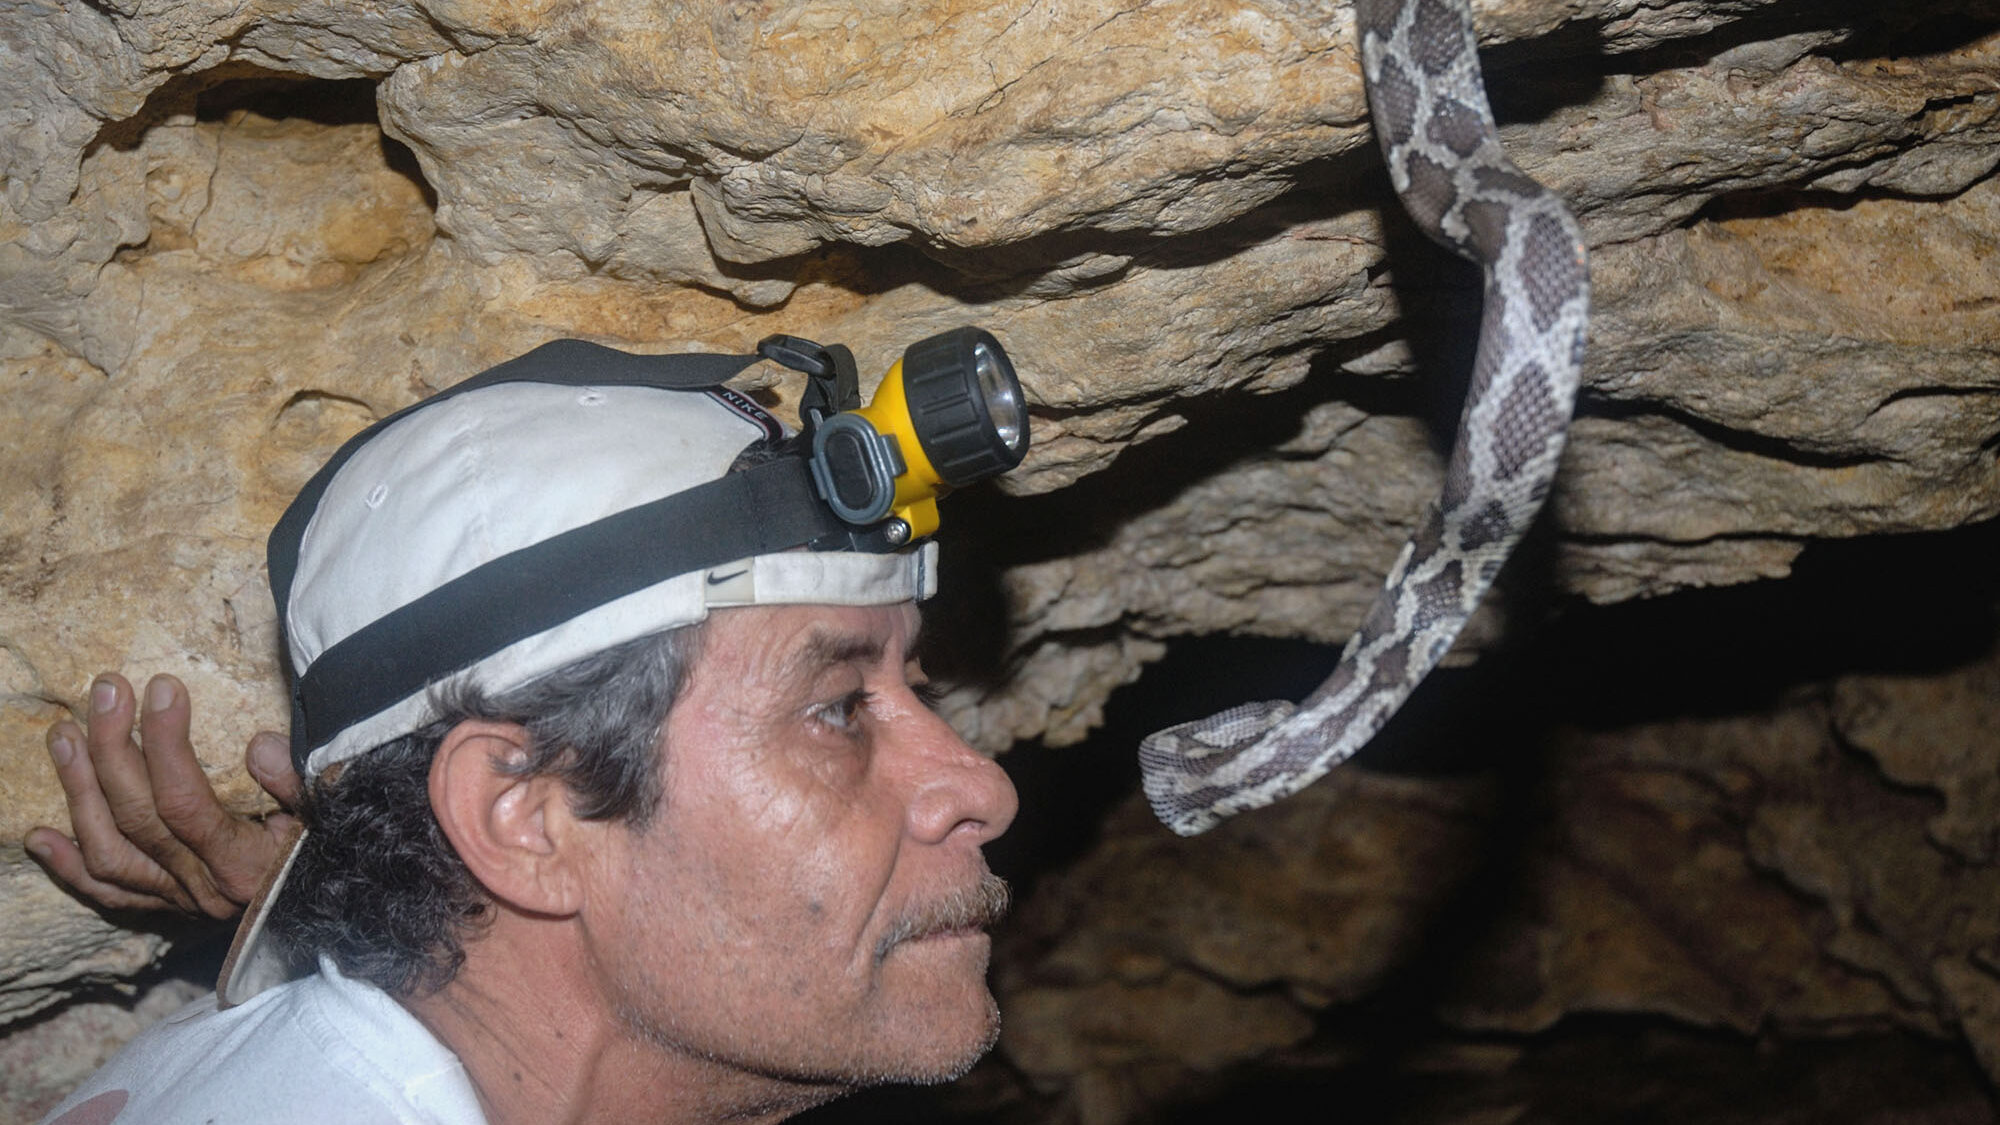 VIDEO: Sight-Mare! The Blind And Deaf Snakes That Hunt Bats In A Pitch Black Cave